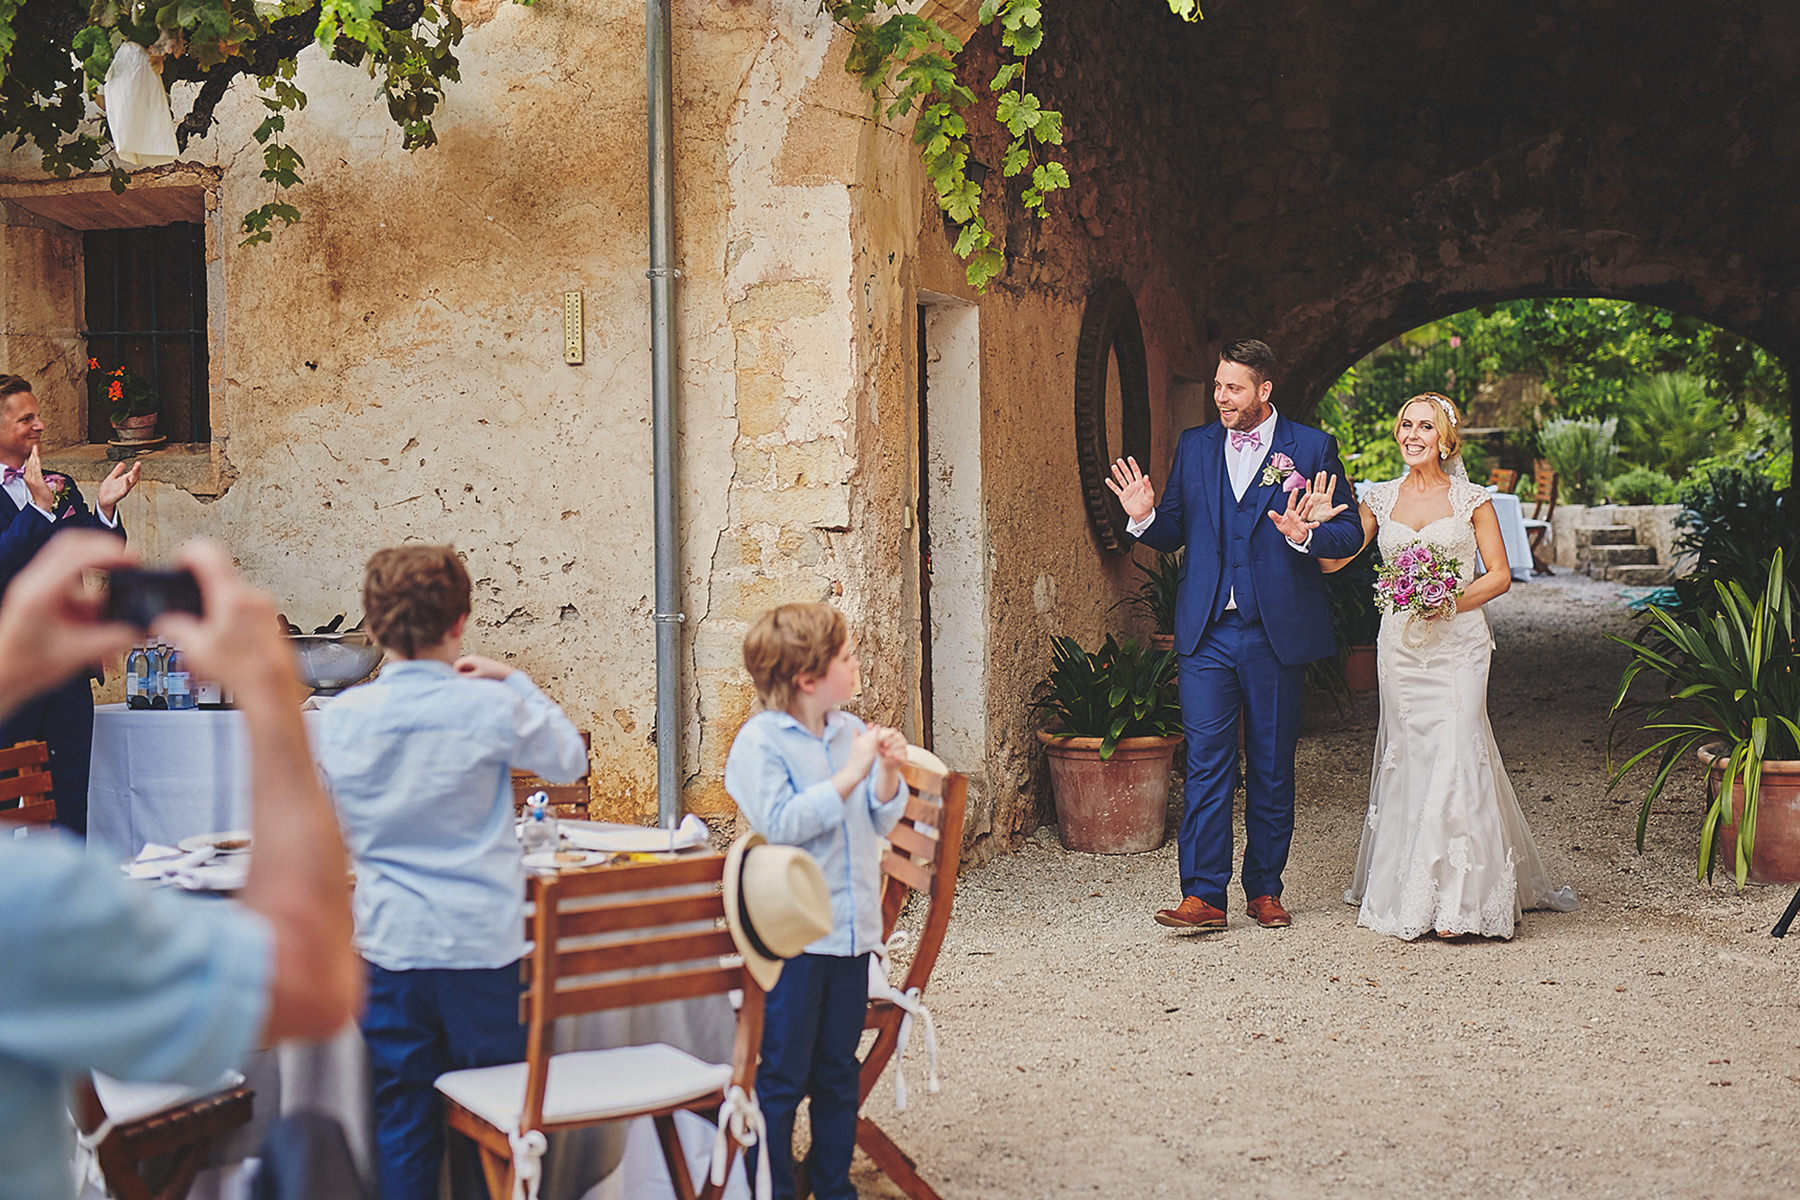 334 - Destination wedding in a magical Mallorca